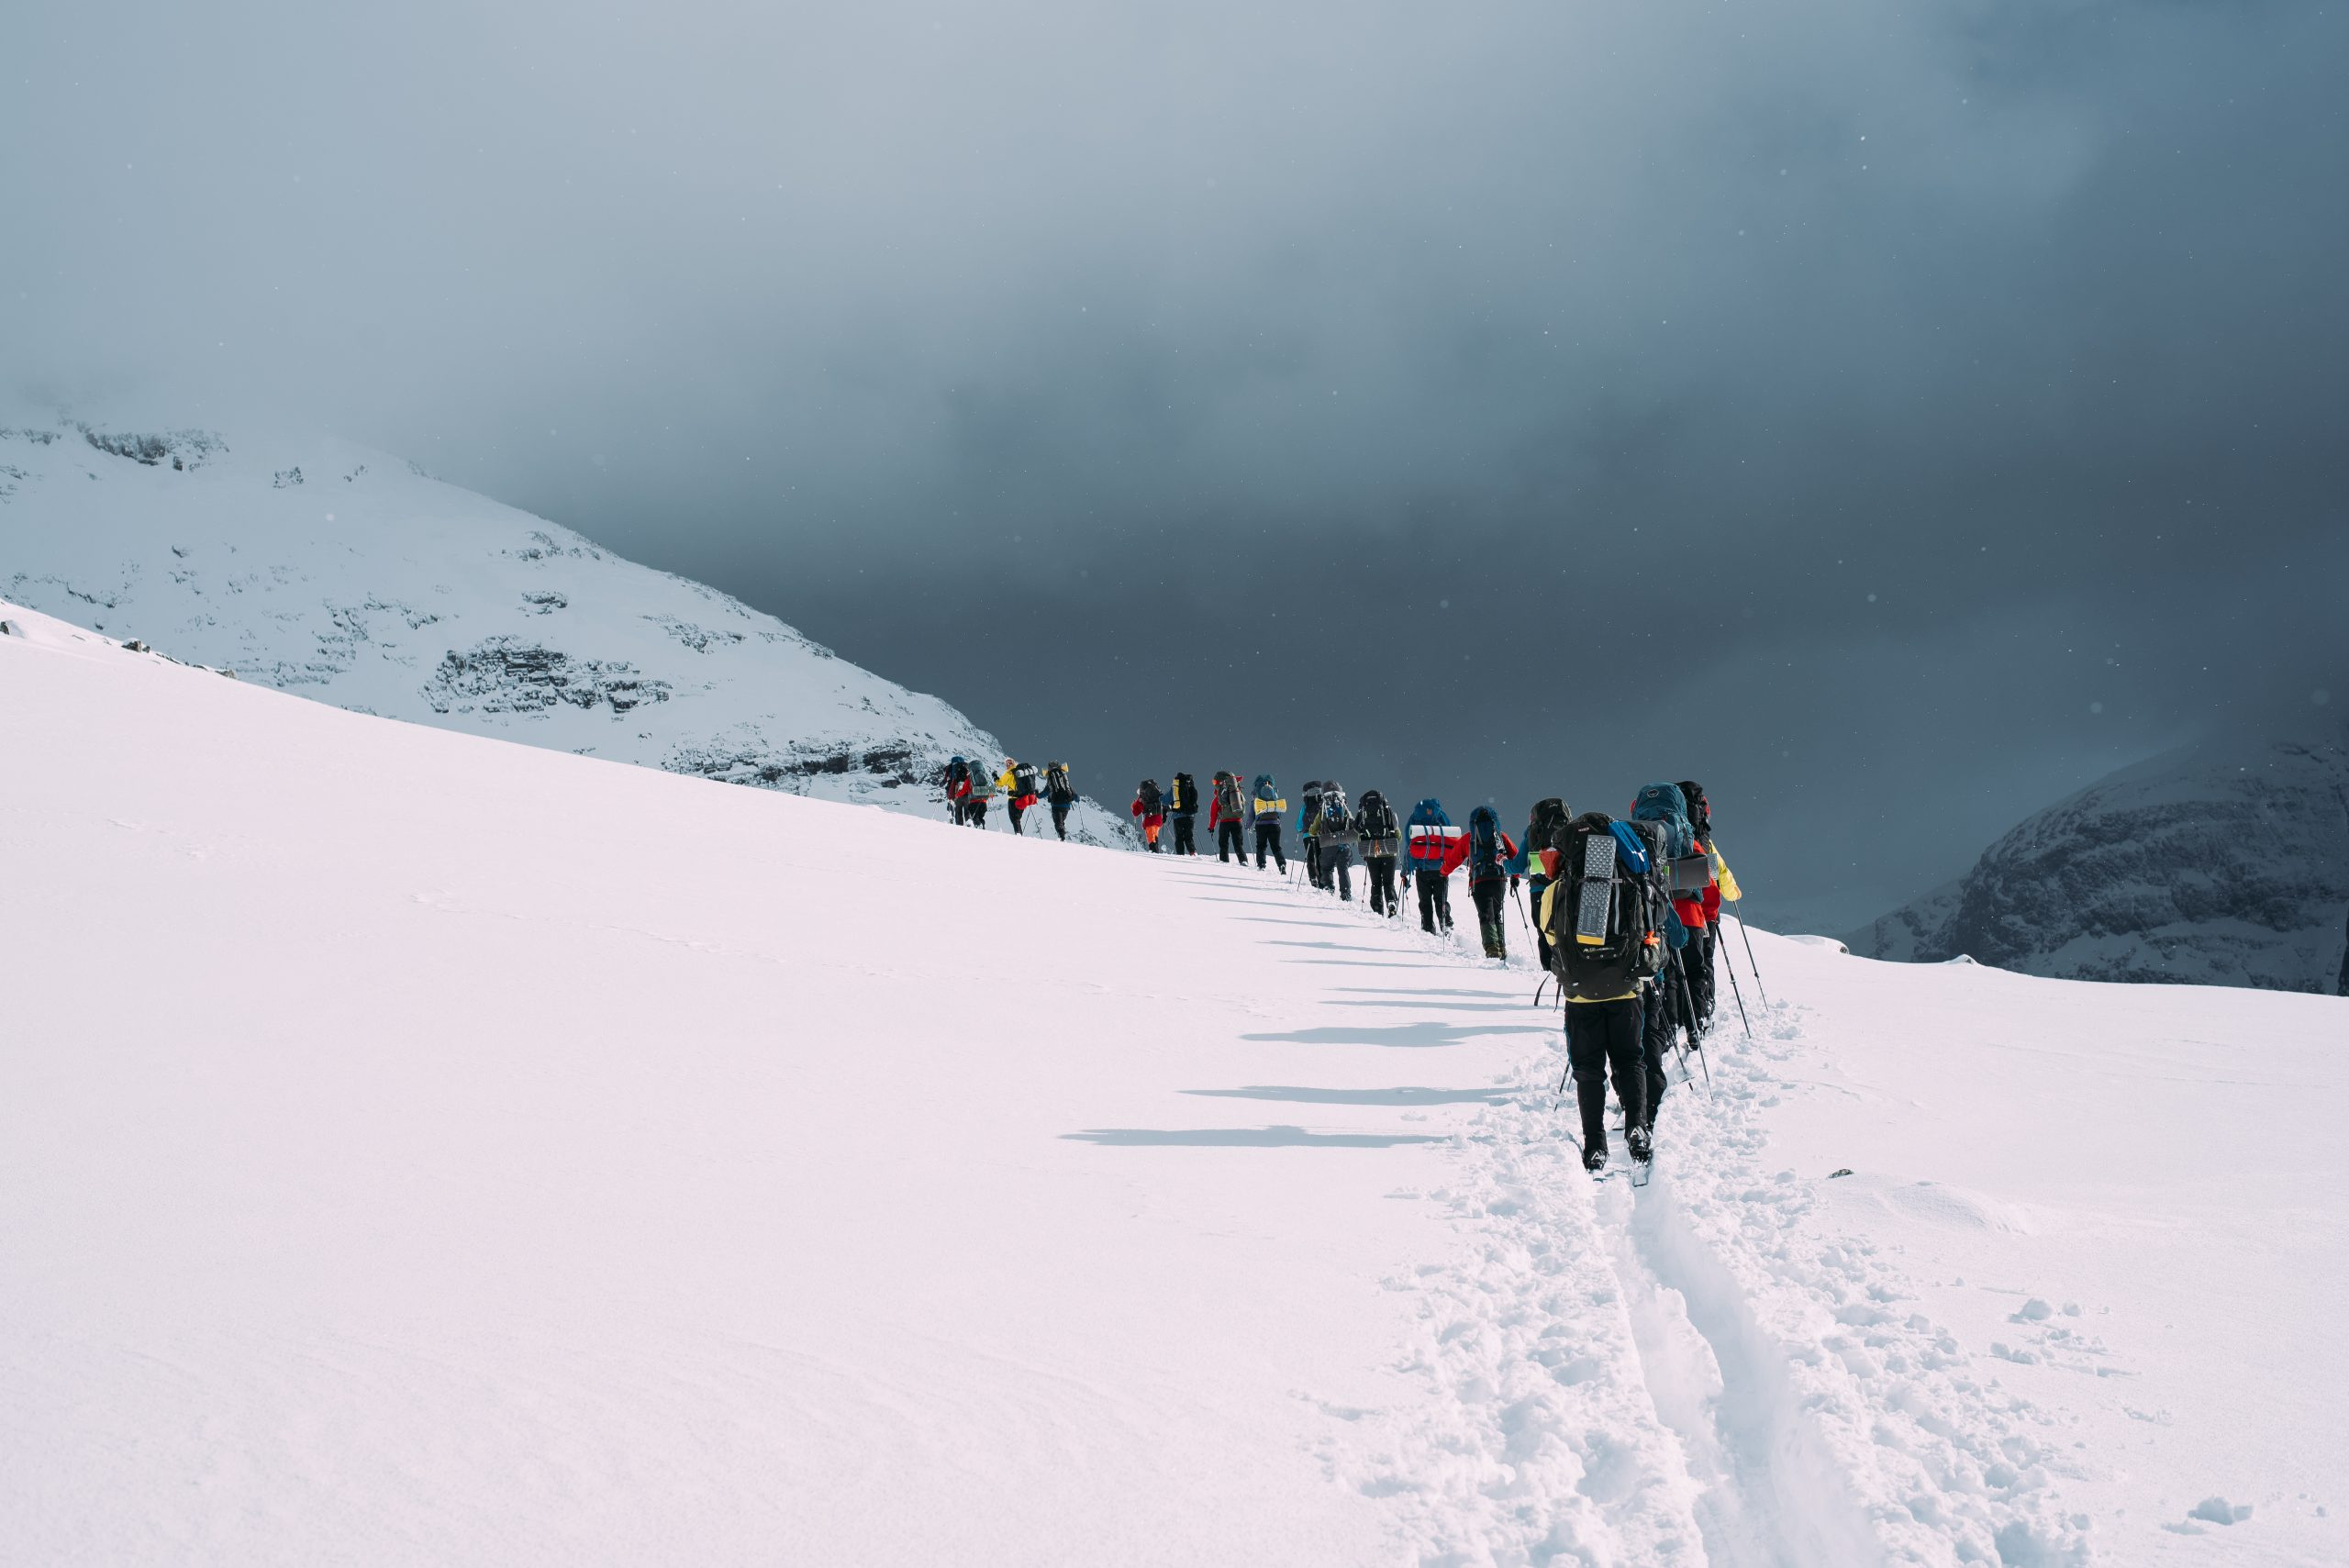 a long line of hikers walking into the distance in the snow